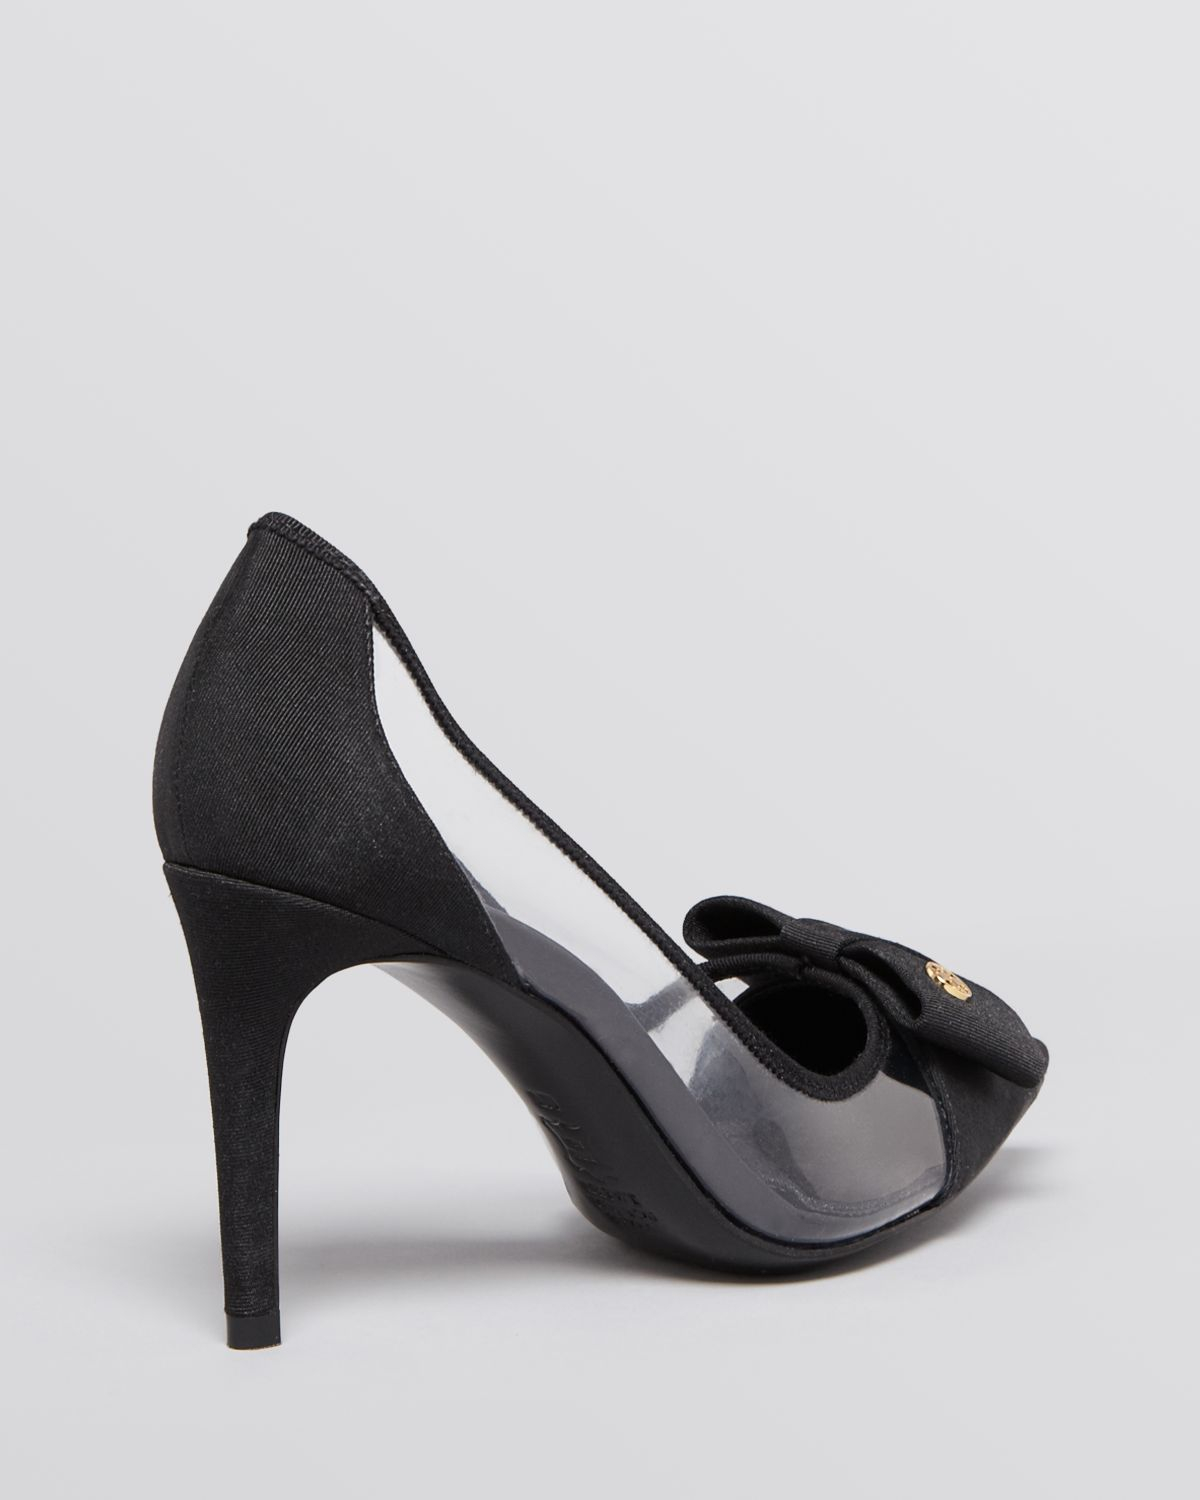 18cdc8690f18 Lyst - Tory Burch Pointed Toe Cap Toe Pumps Aimee High Heel in Black